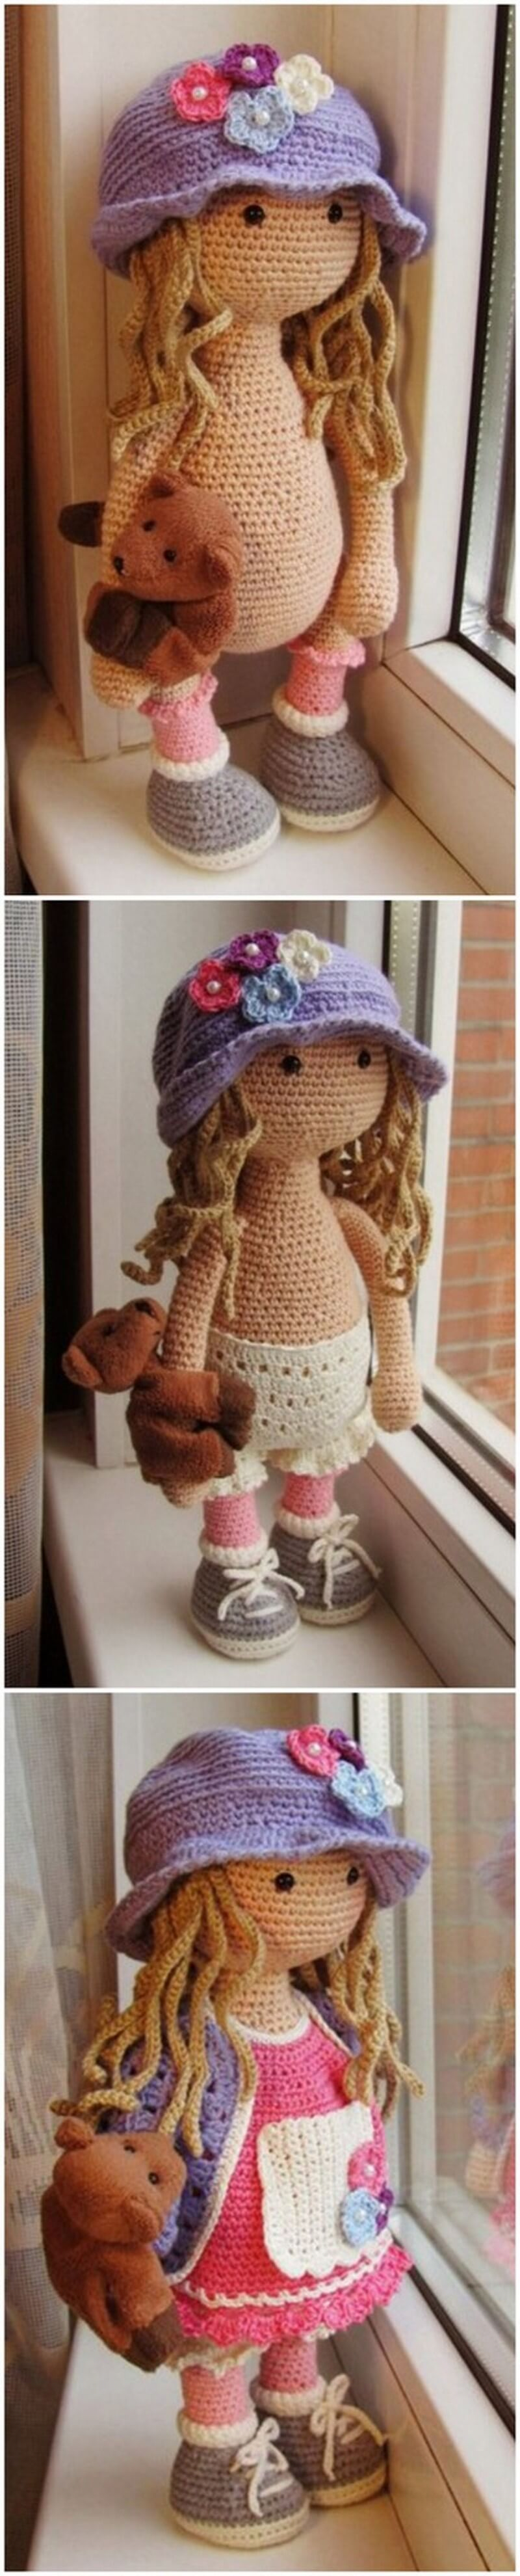 Crochet Amigurumi Doll Pattern (58)